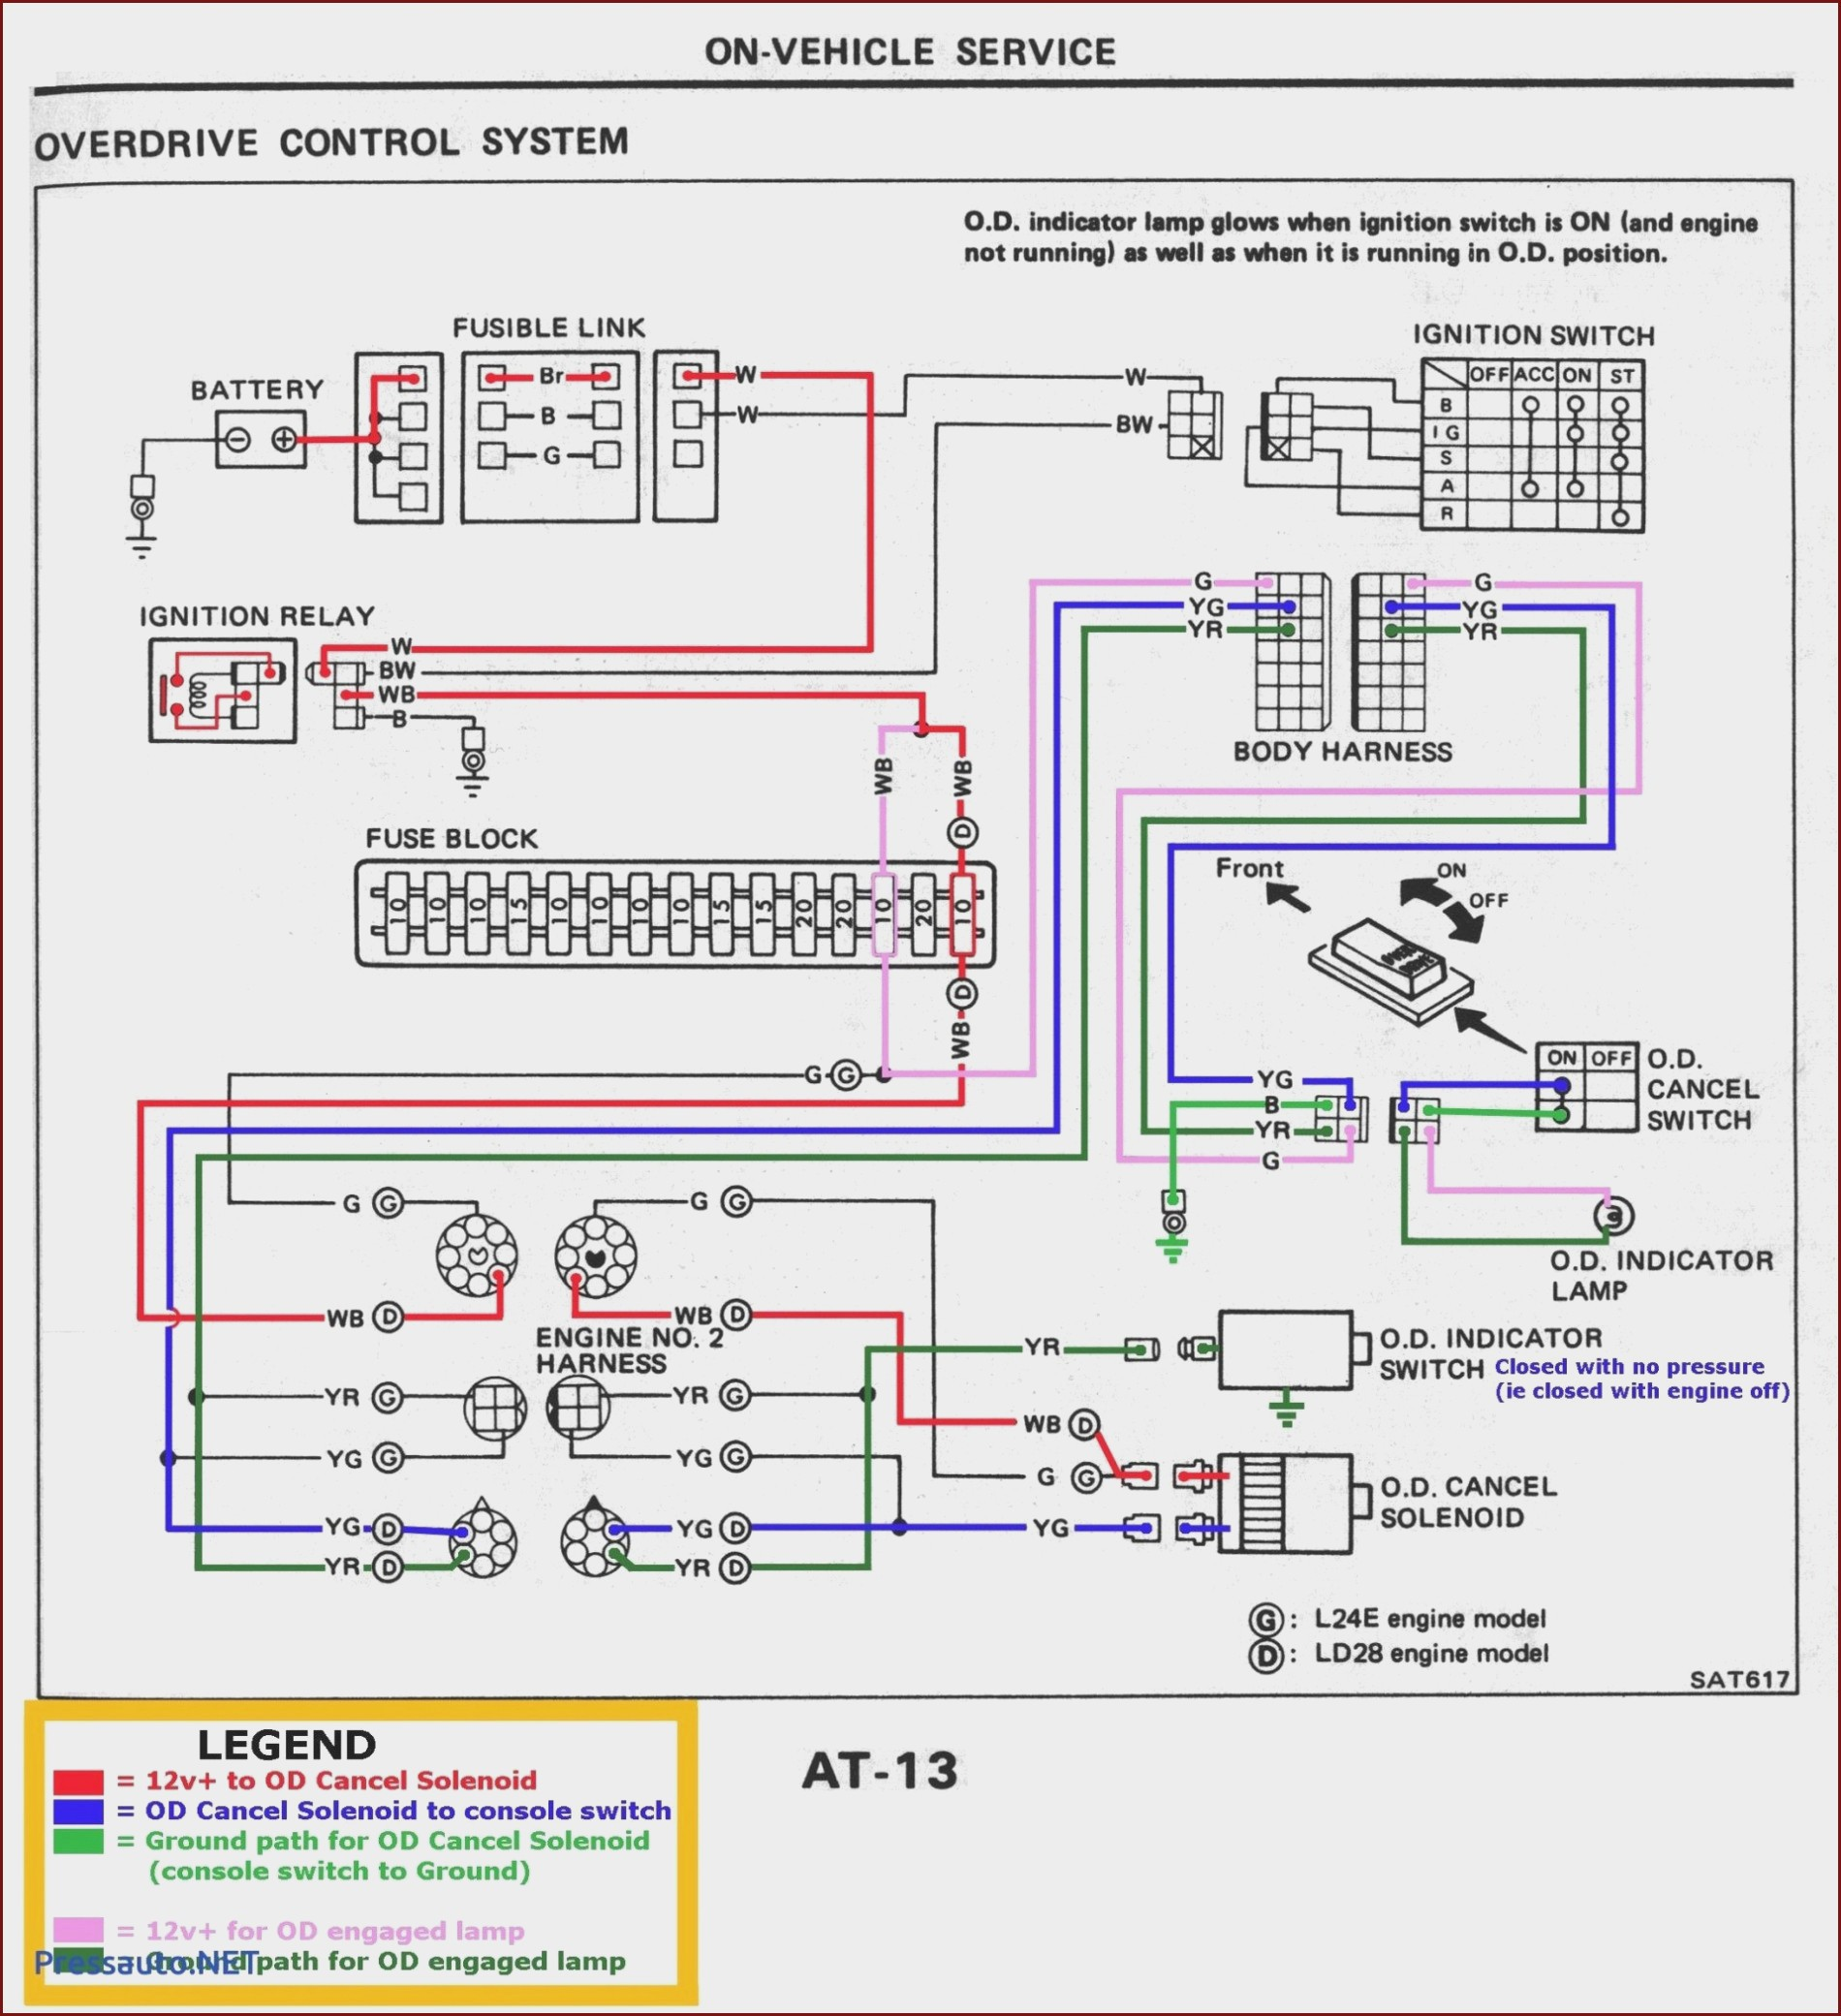 Diagram Of Car Brakes Electrical Wiring Diagrams for Dummies at Manuals Library Of Diagram Of Car Brakes